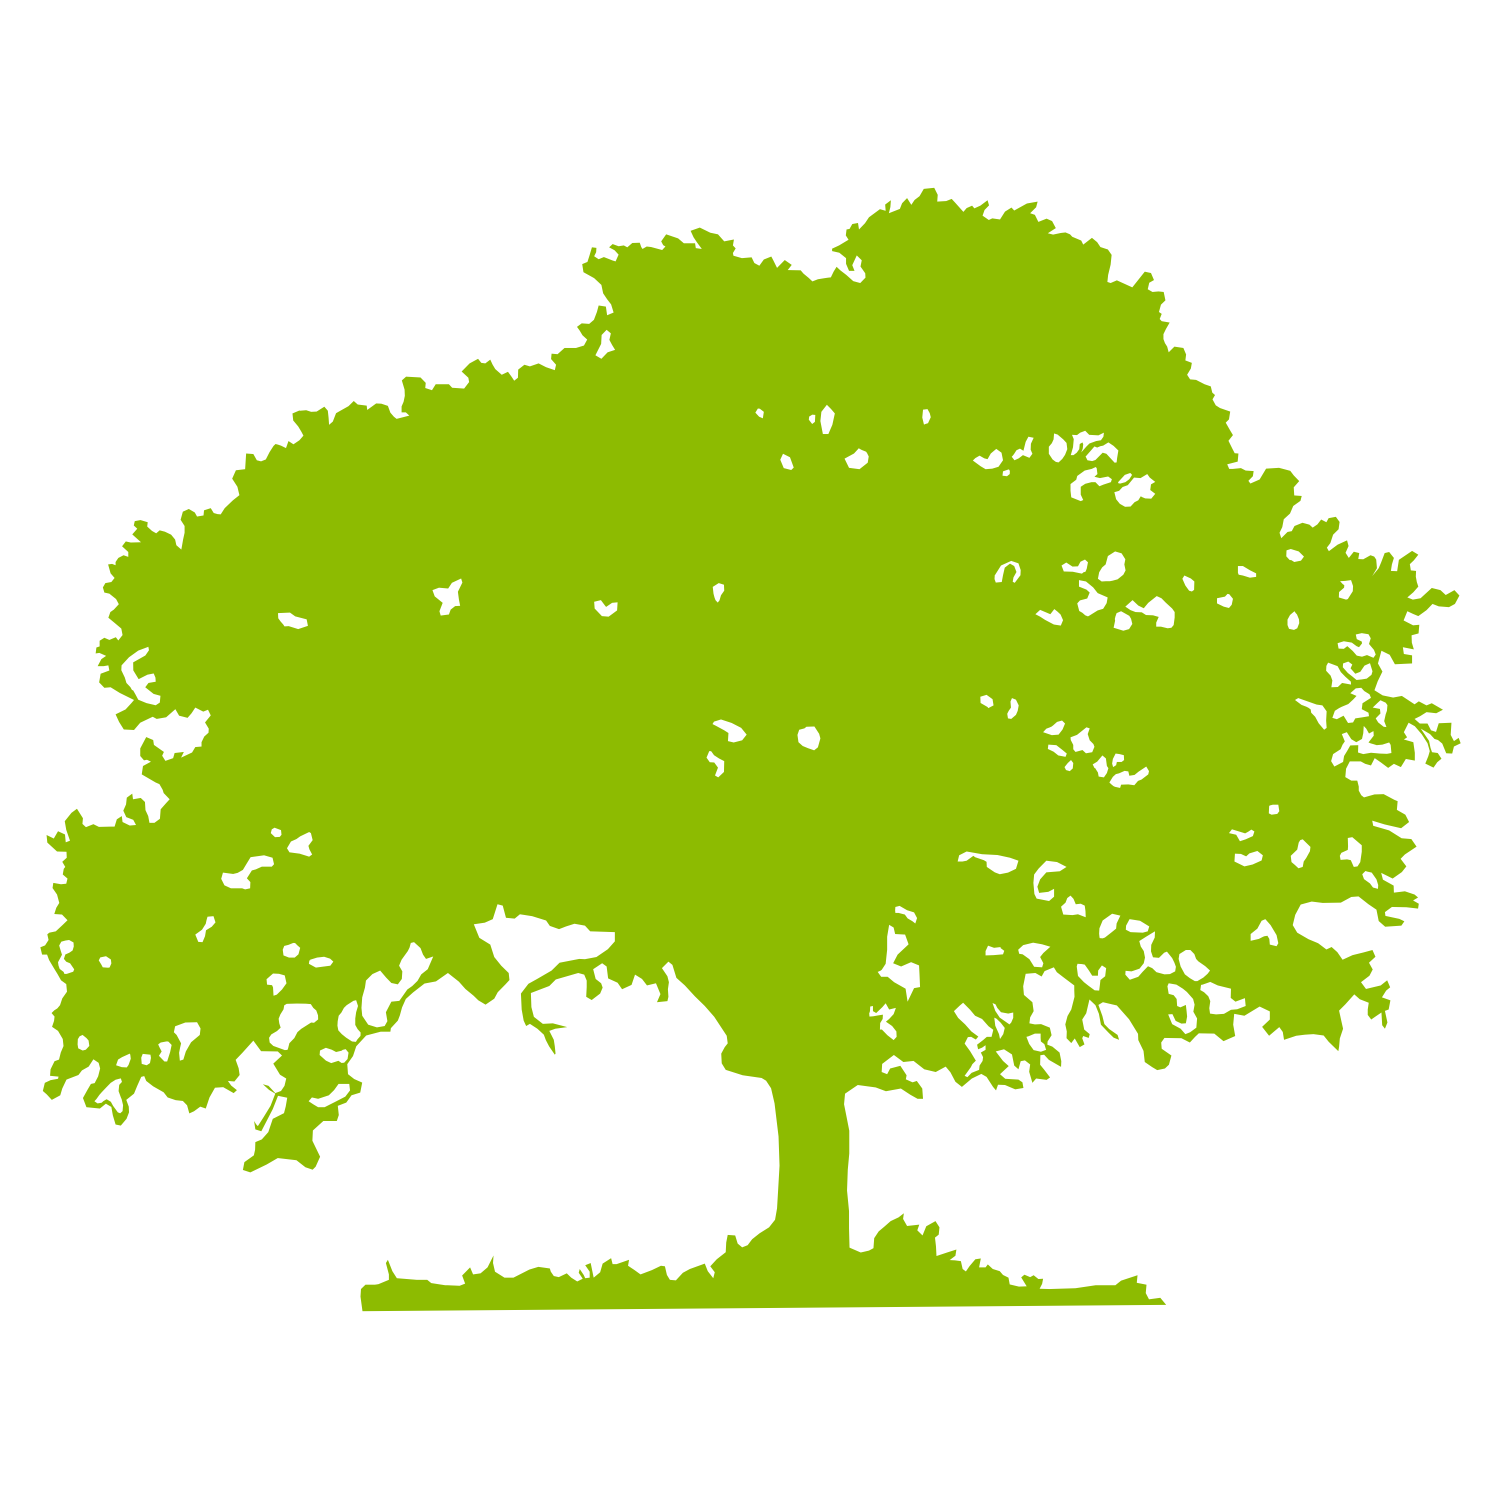 Oak Tree Vector Free Download | Clipart Panda - Free Clipart Images